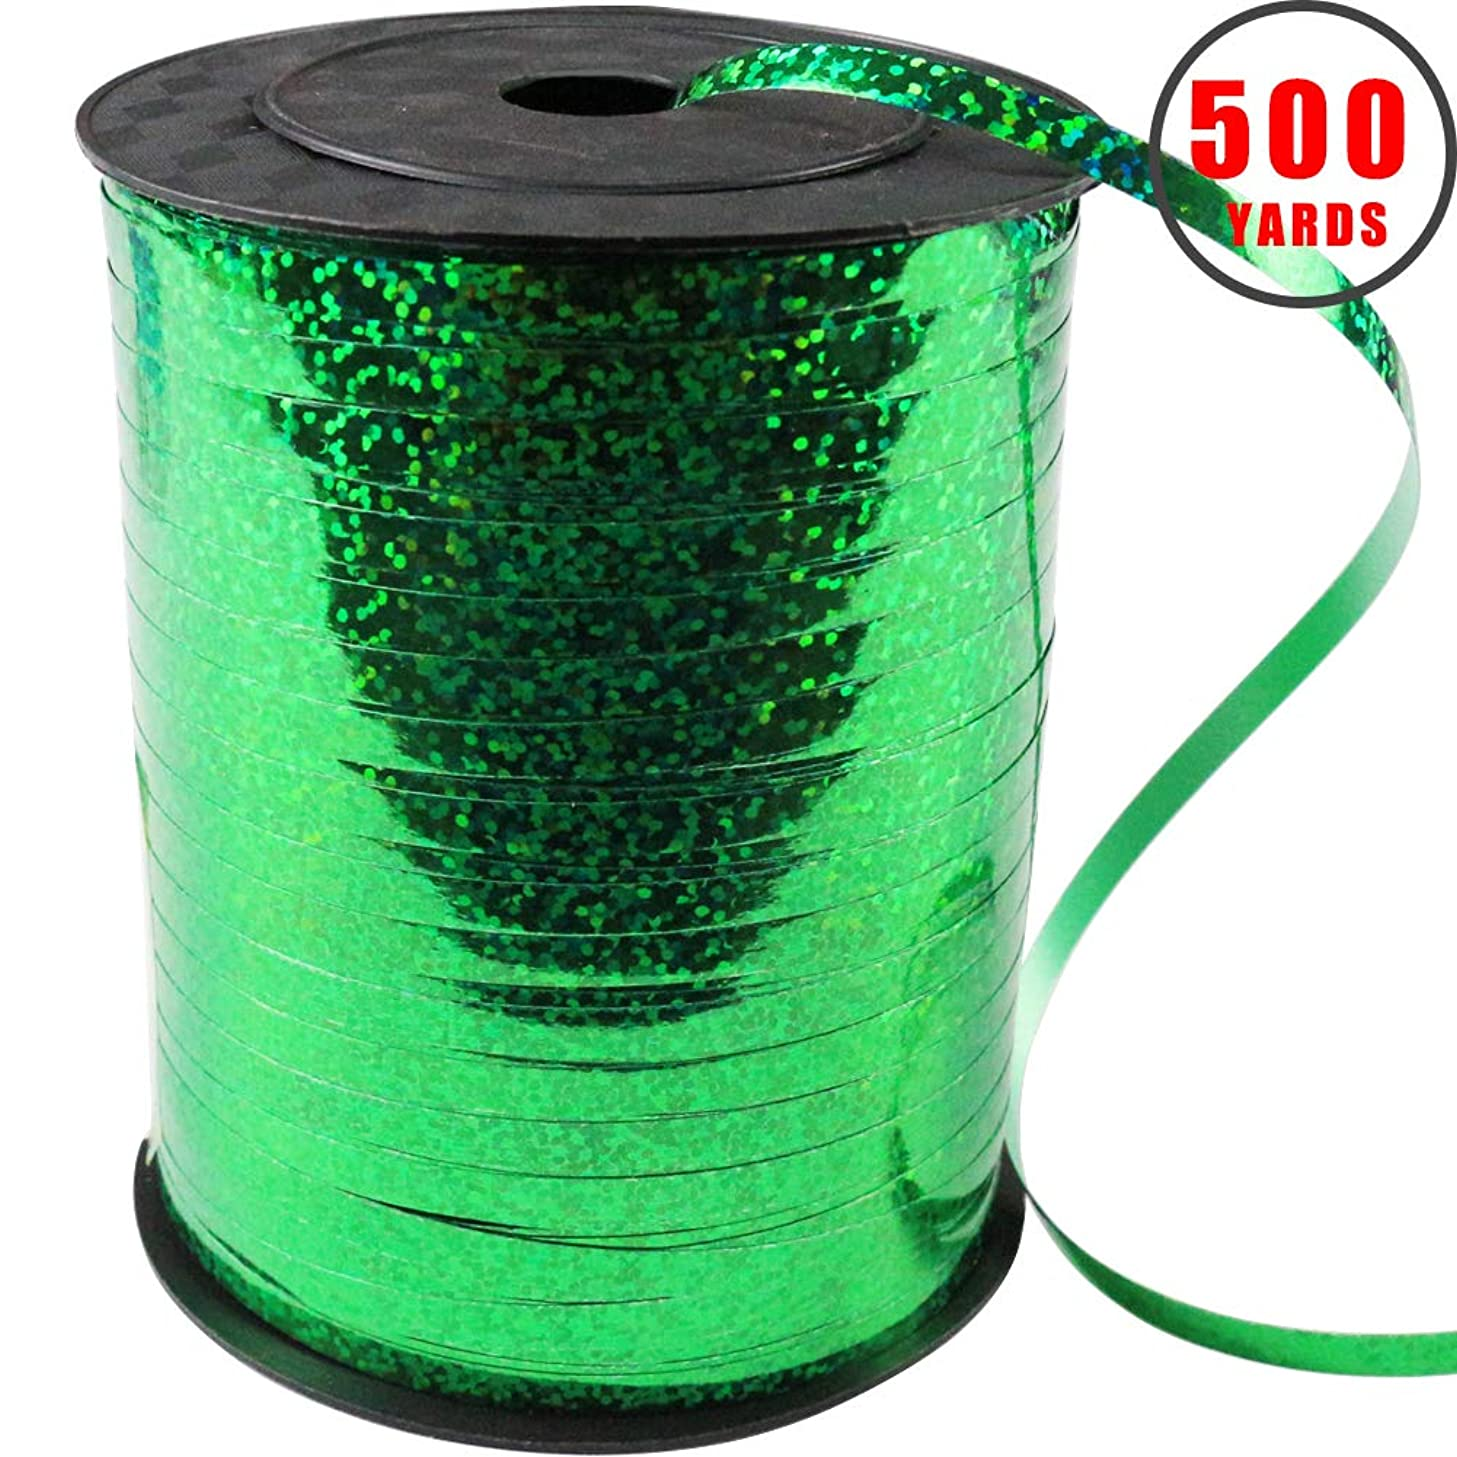 500 Yards Shiny Green Curling Balloon Ribbon,3/16-Inch Balloon String Gift Wrapping Ribbon Perfect for Birthday Weddings Party Decorations